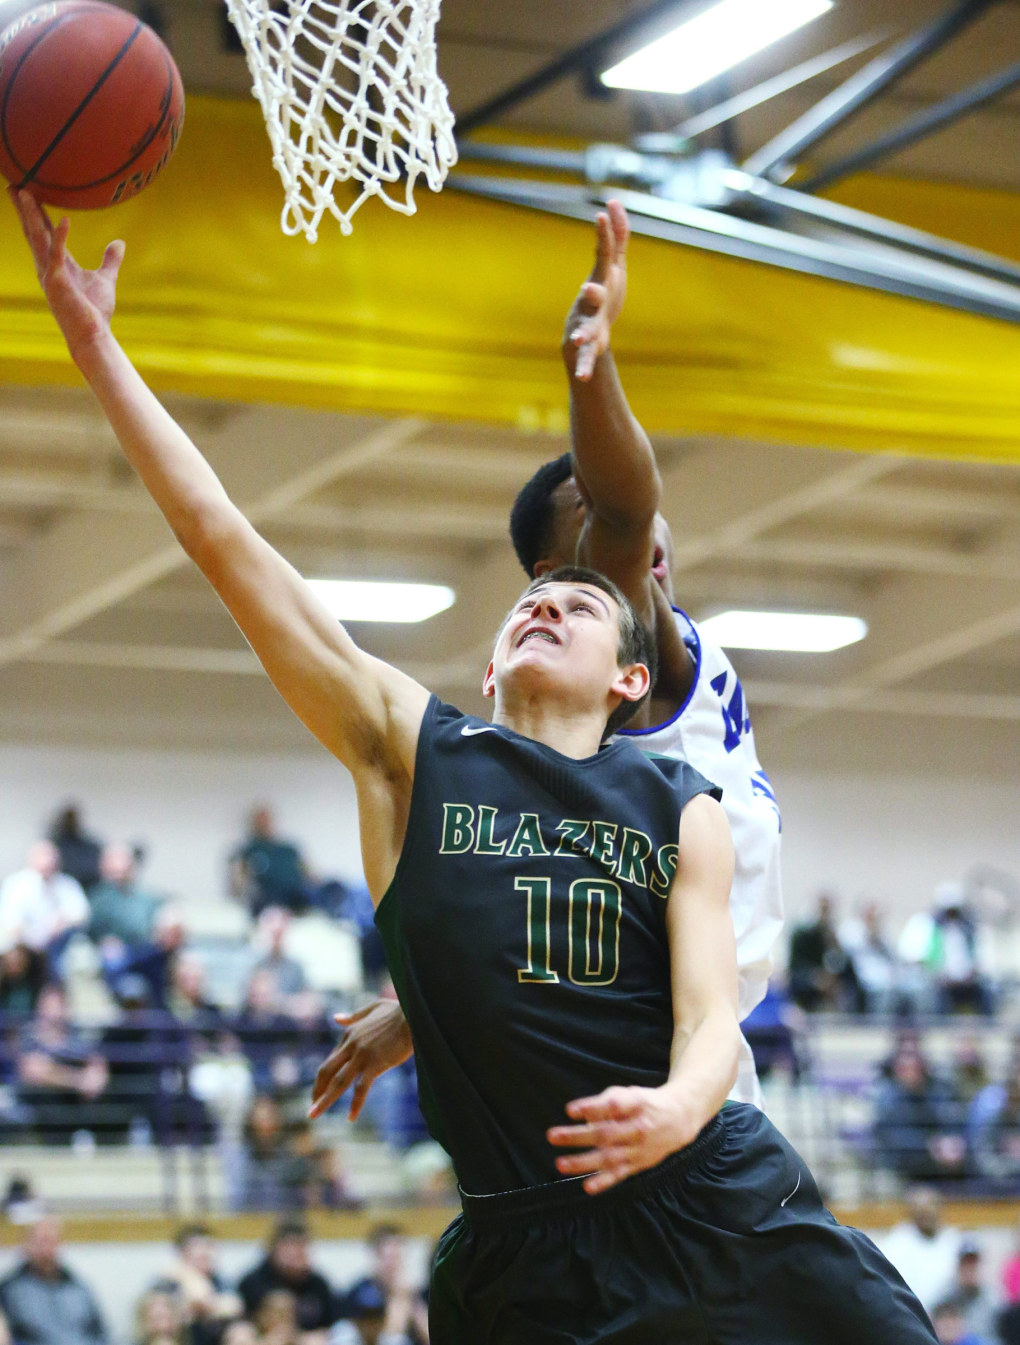 Timberline shooting guard Erik Stevenson goes in for a shot against Federal Way center Timoney Buckley during the first half of the Boys 4A Hardwood Classic regional round at Puyallup High School on Friday, Feb. 27, 2015.  (Lindsey Wasson / The Seattle Times)